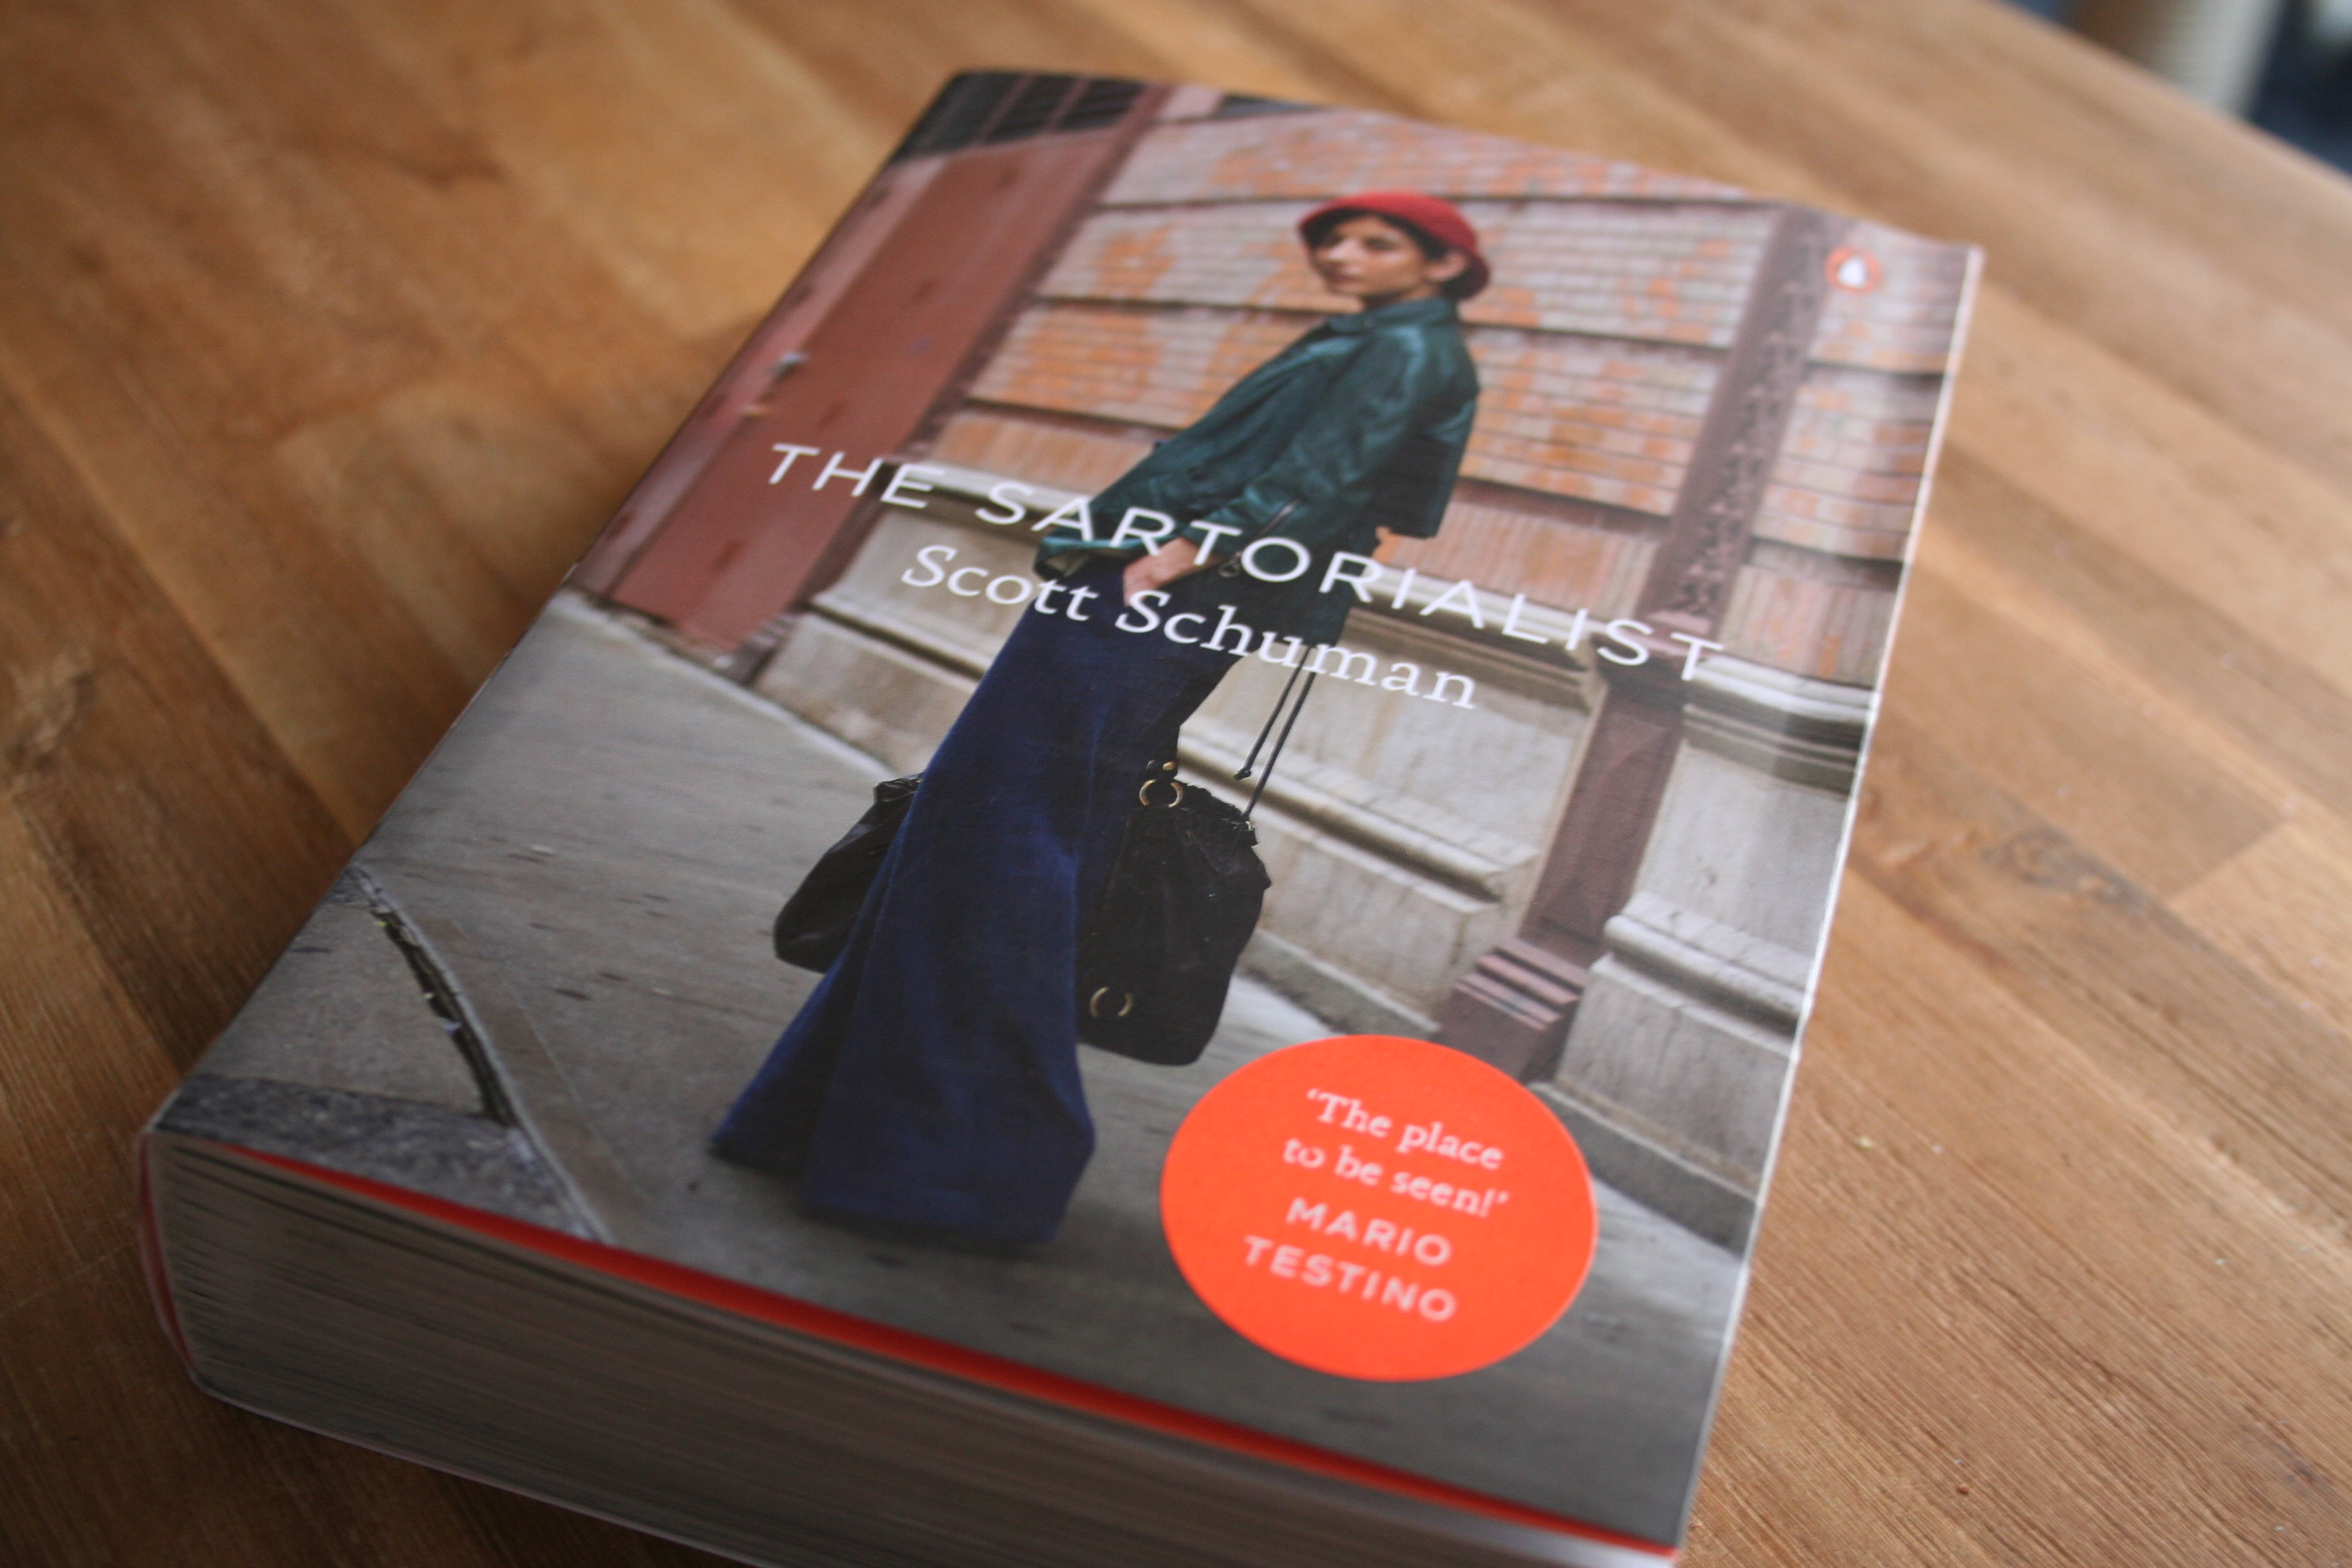 Just delivered: The book of The Sartorialist!